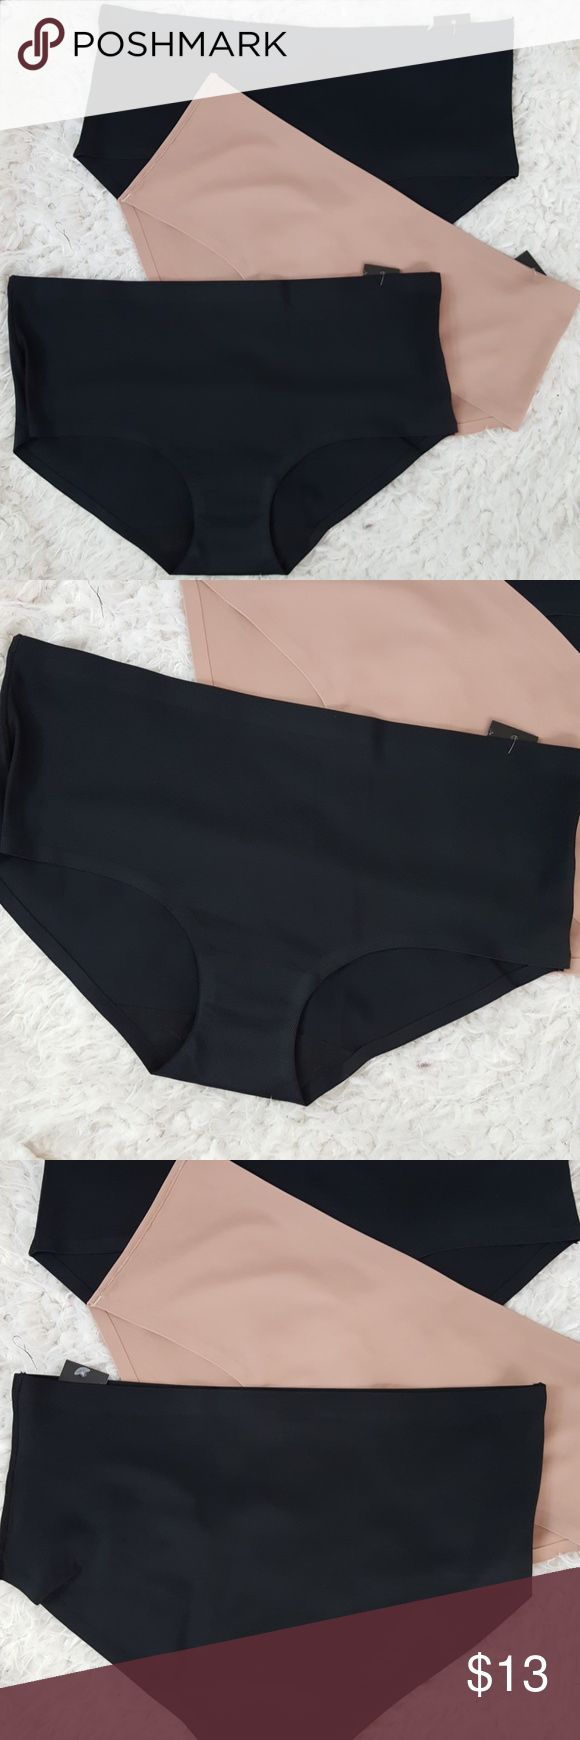 Sale 3 Laser Cut Hipster brief panty Sale sale sale sale  Bundle of 3 NO LINE laser cut briefs   Hipster panties in a size xlarge, soft and comfortable! 90 % polyamide  10% spandex.  Please check out my bra & panty SALES!! Intimates & Sleepwear Panties